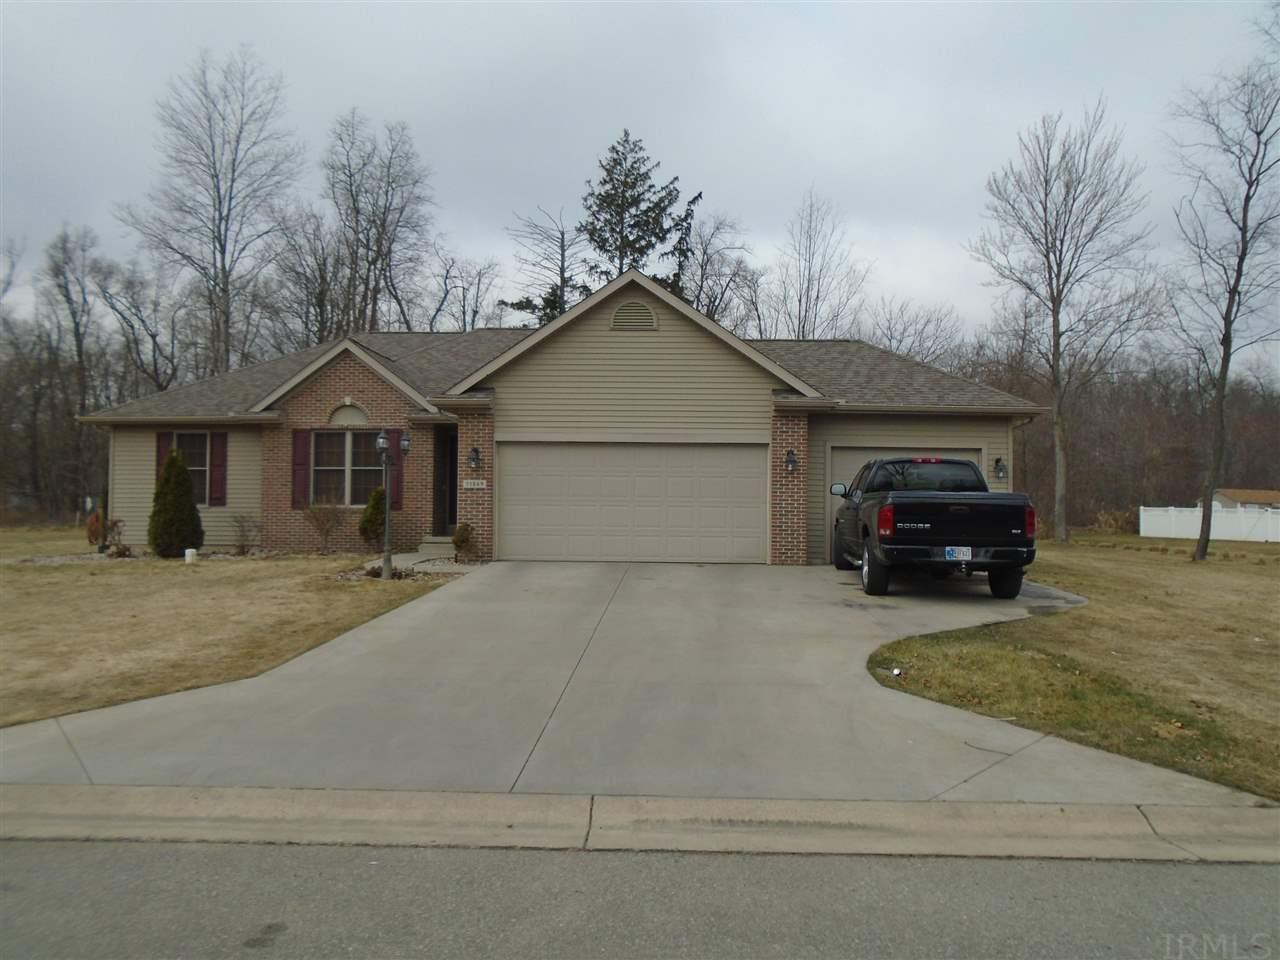 51869 Tall Pines Elkhart, IN 46514